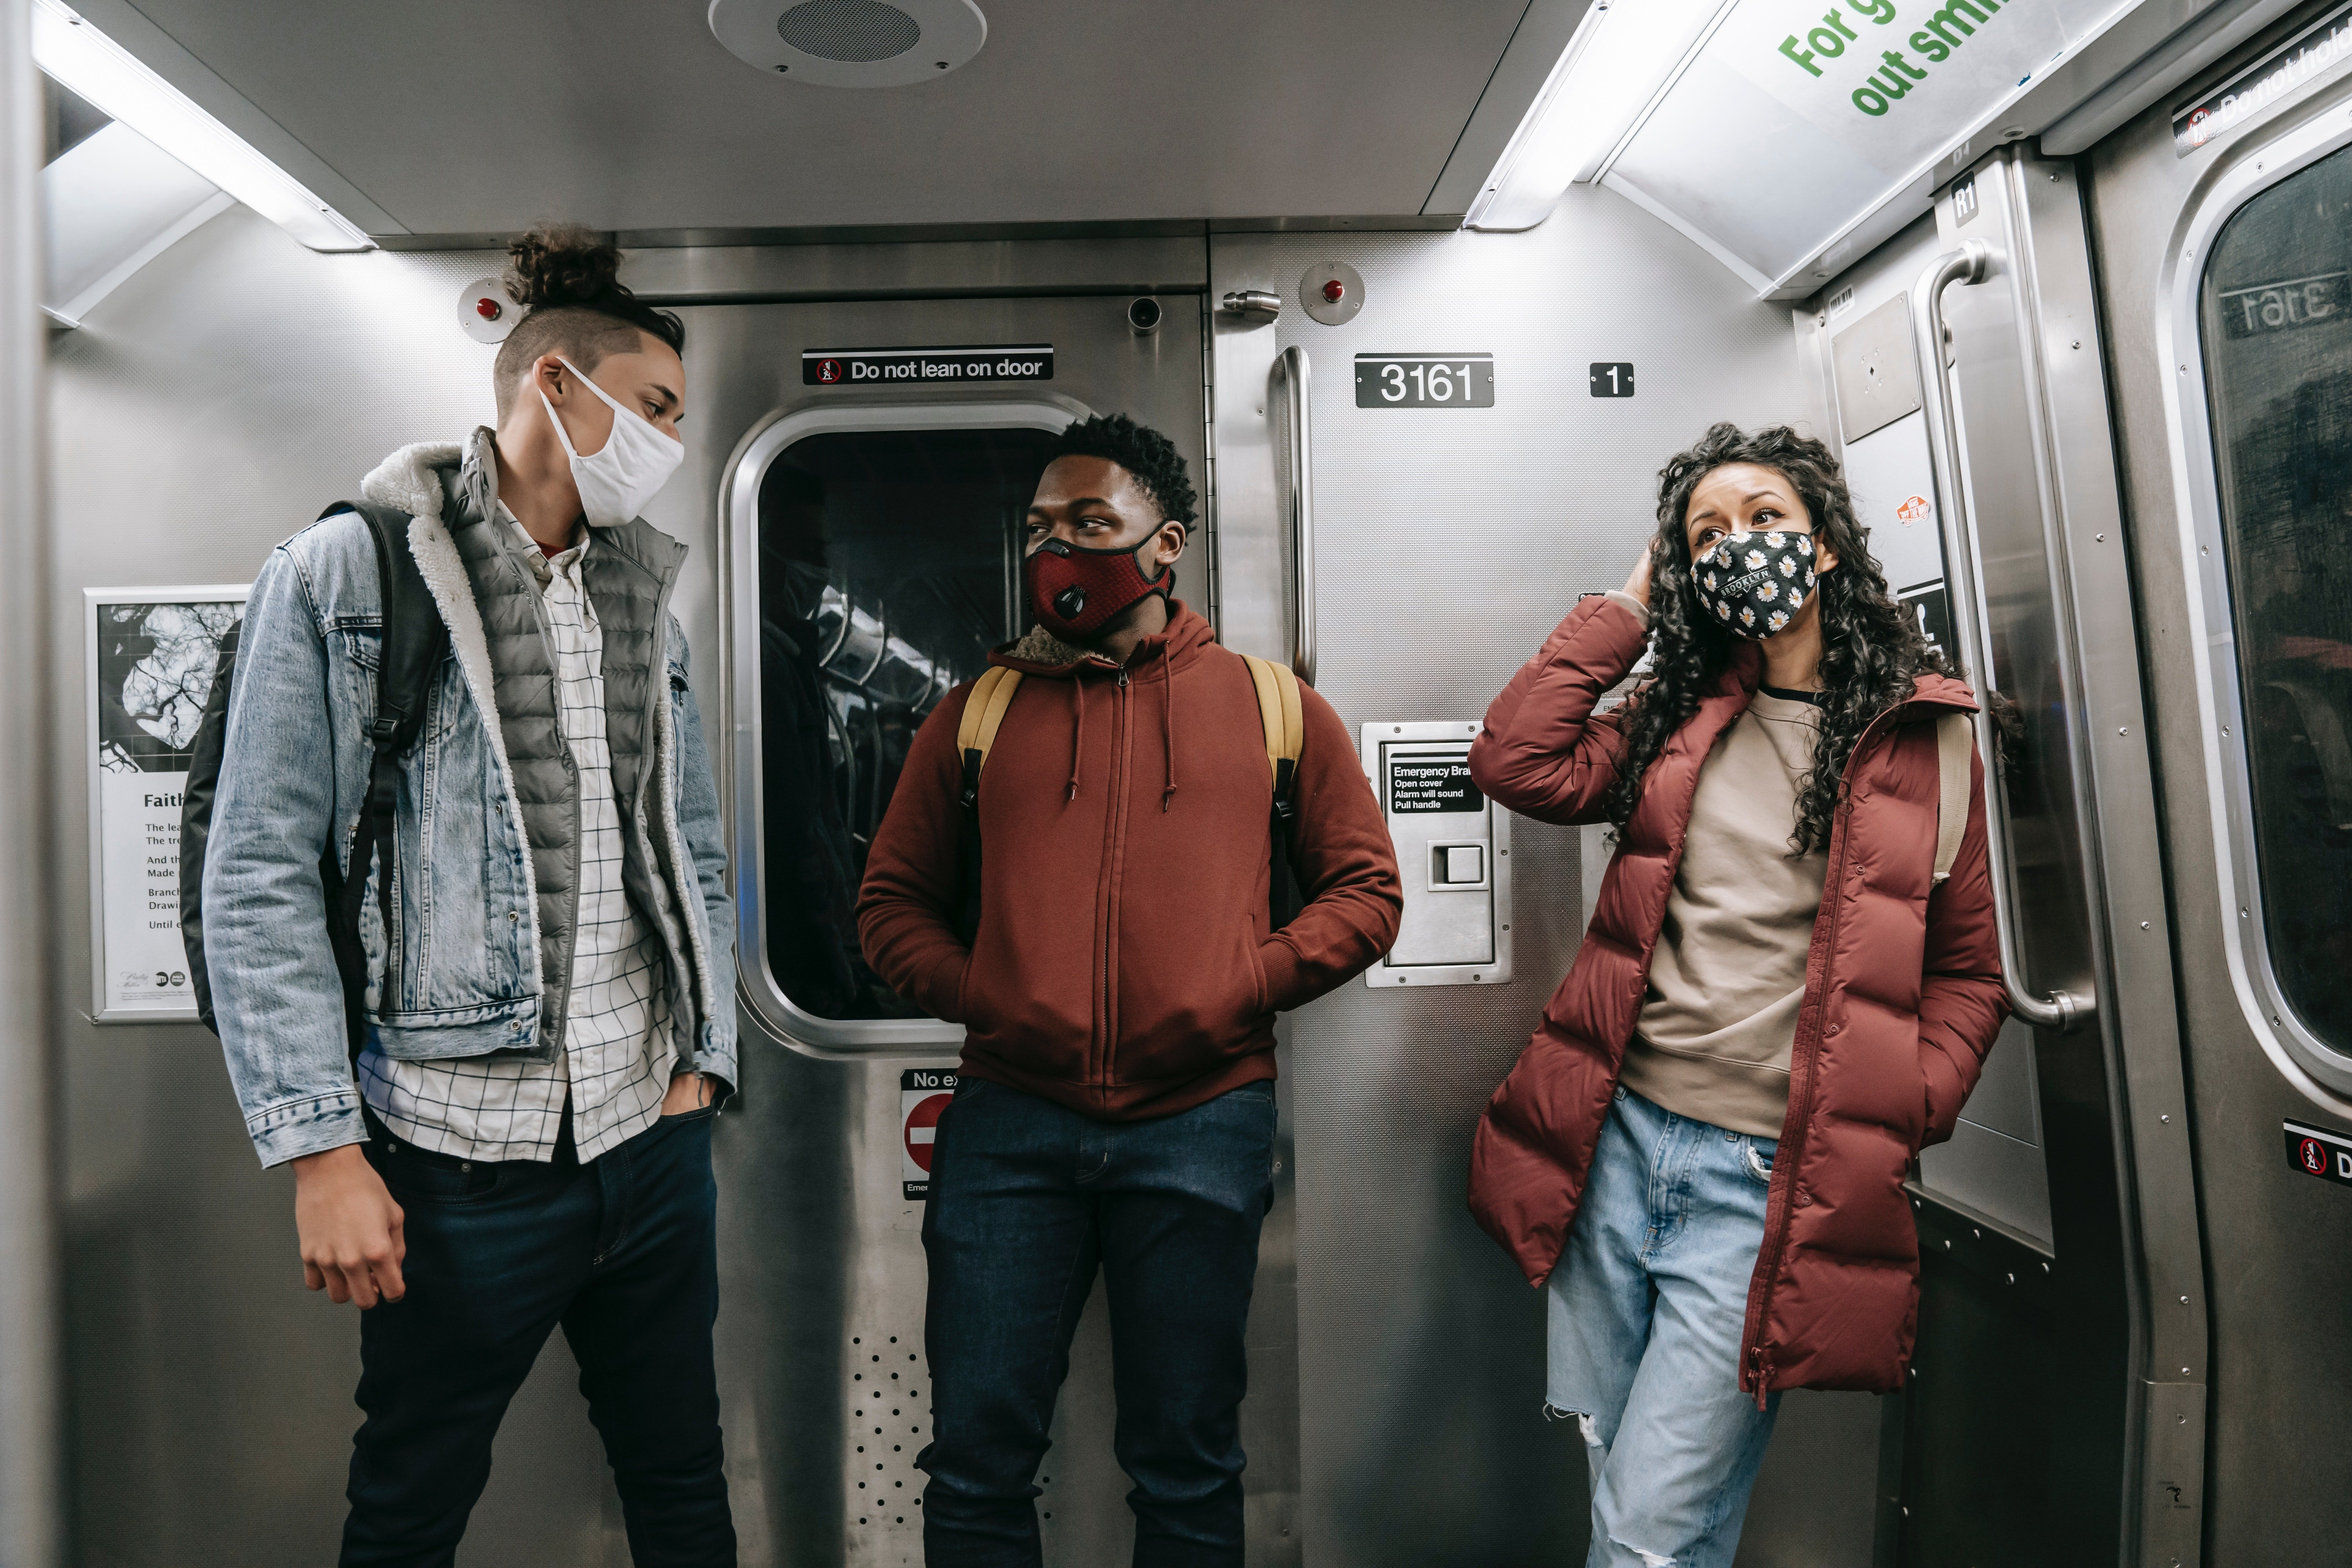 Pictured - Three friends wearing masks on a subway train | Source: Pexels